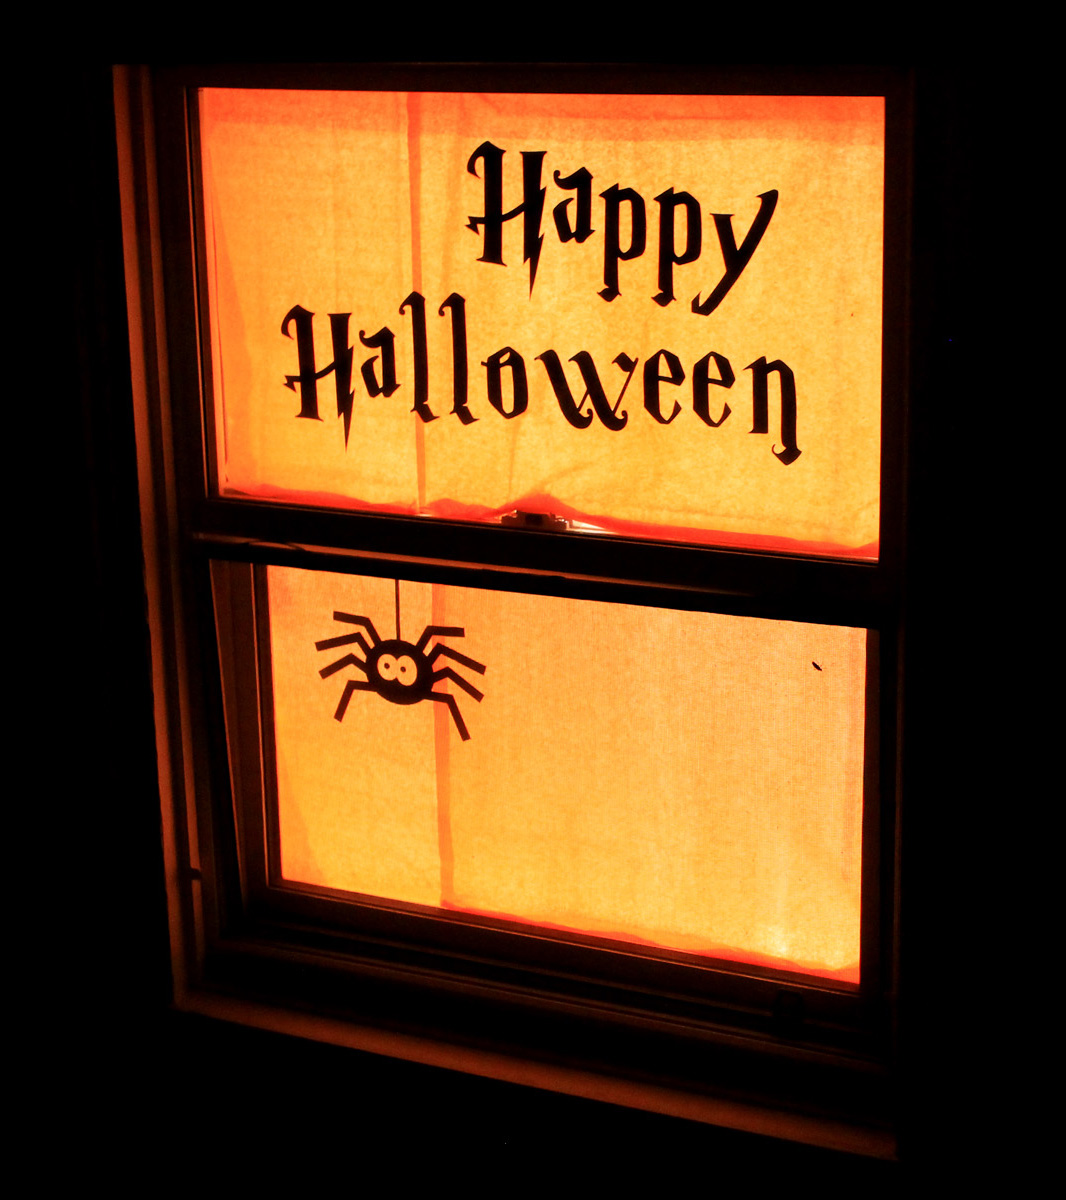 The 33 Best Halloween Window Decorations for 2020